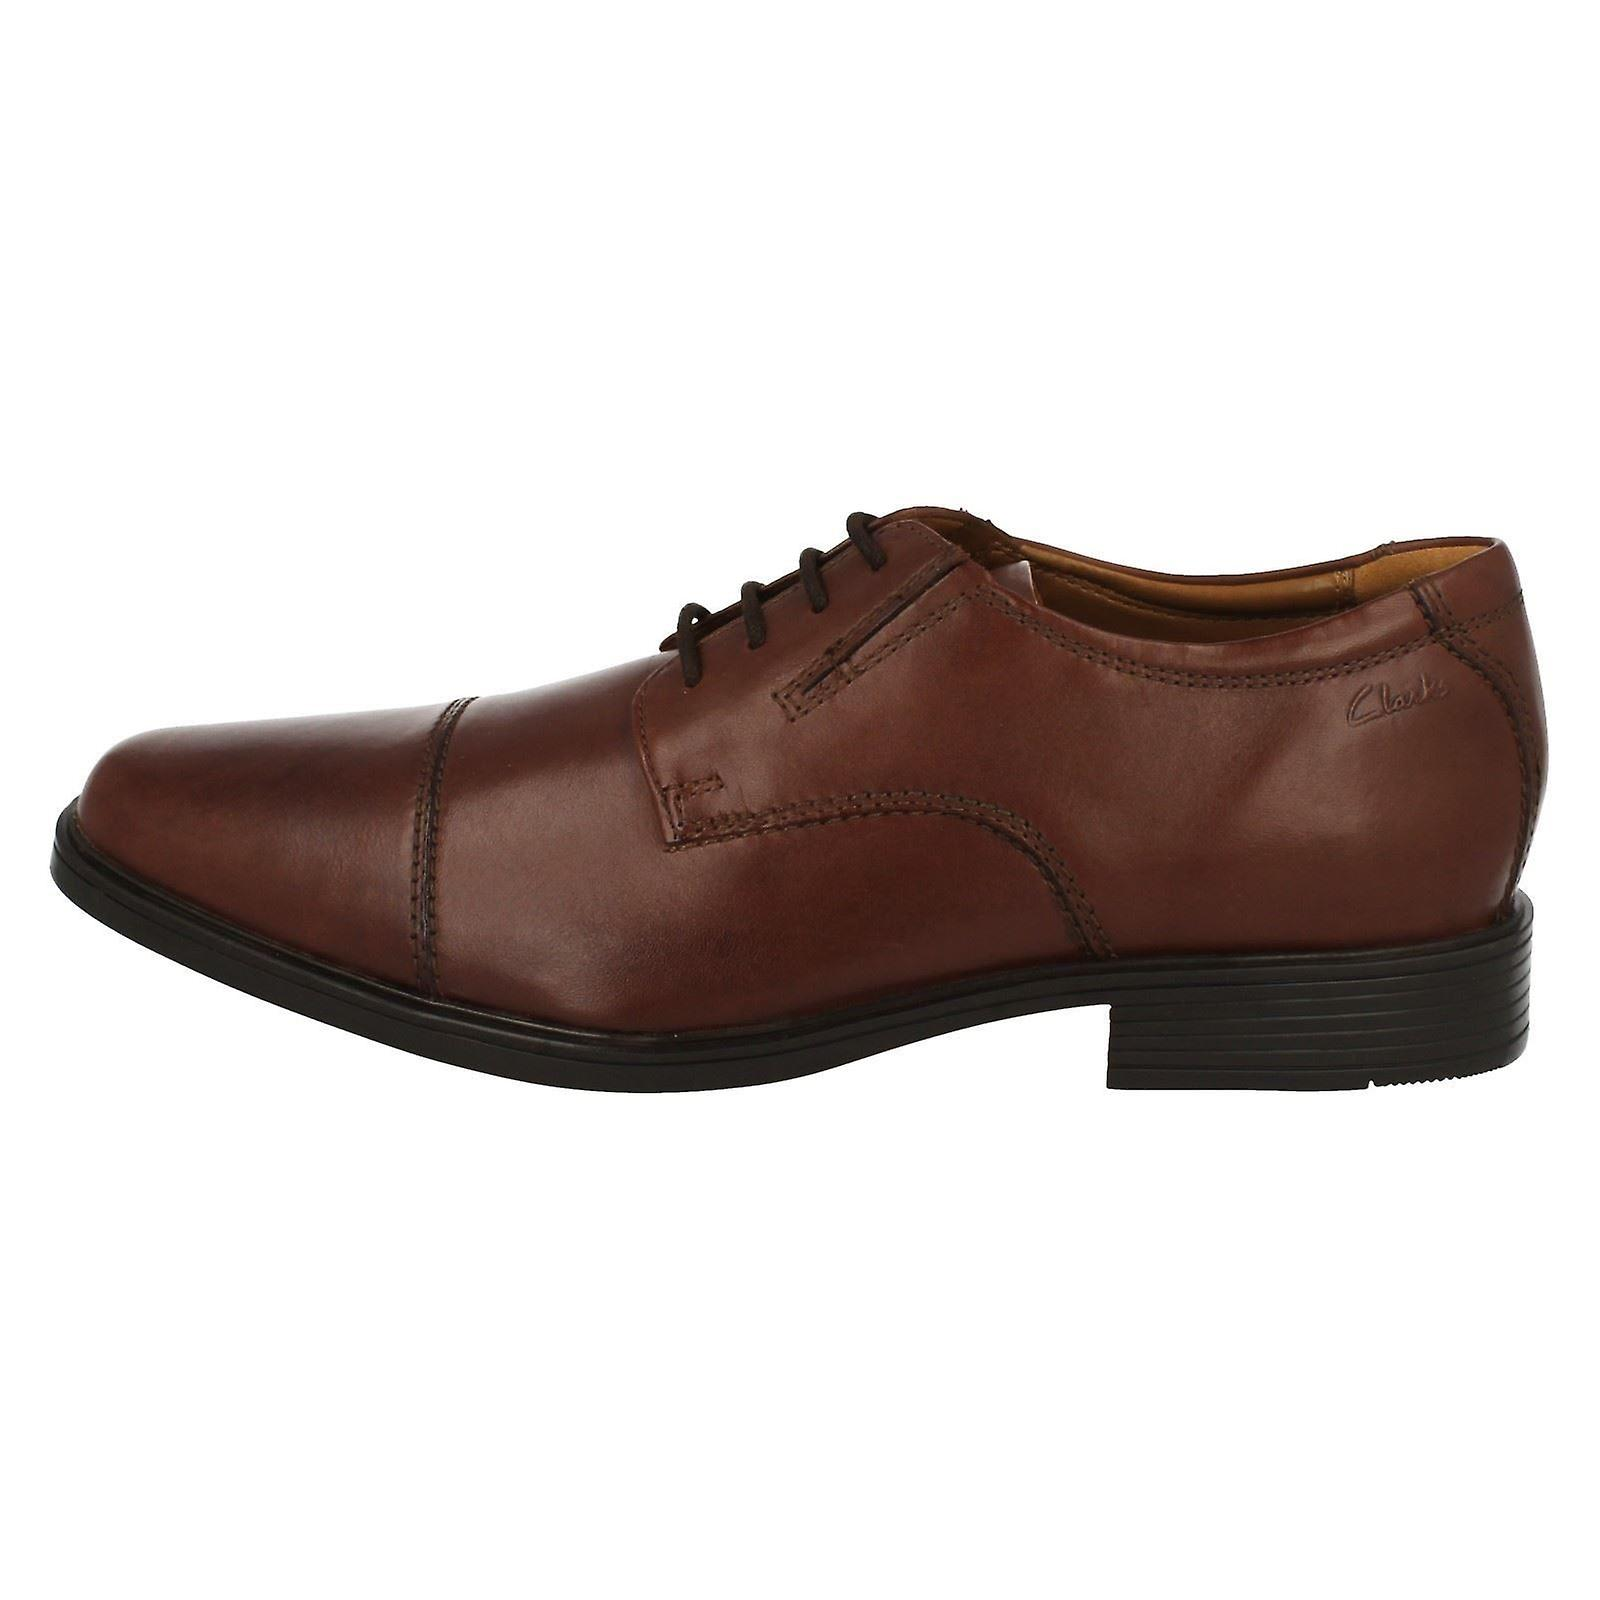 Mens TILDEN WALK dark tan leather lace up shoes by Clarks retail £58.99